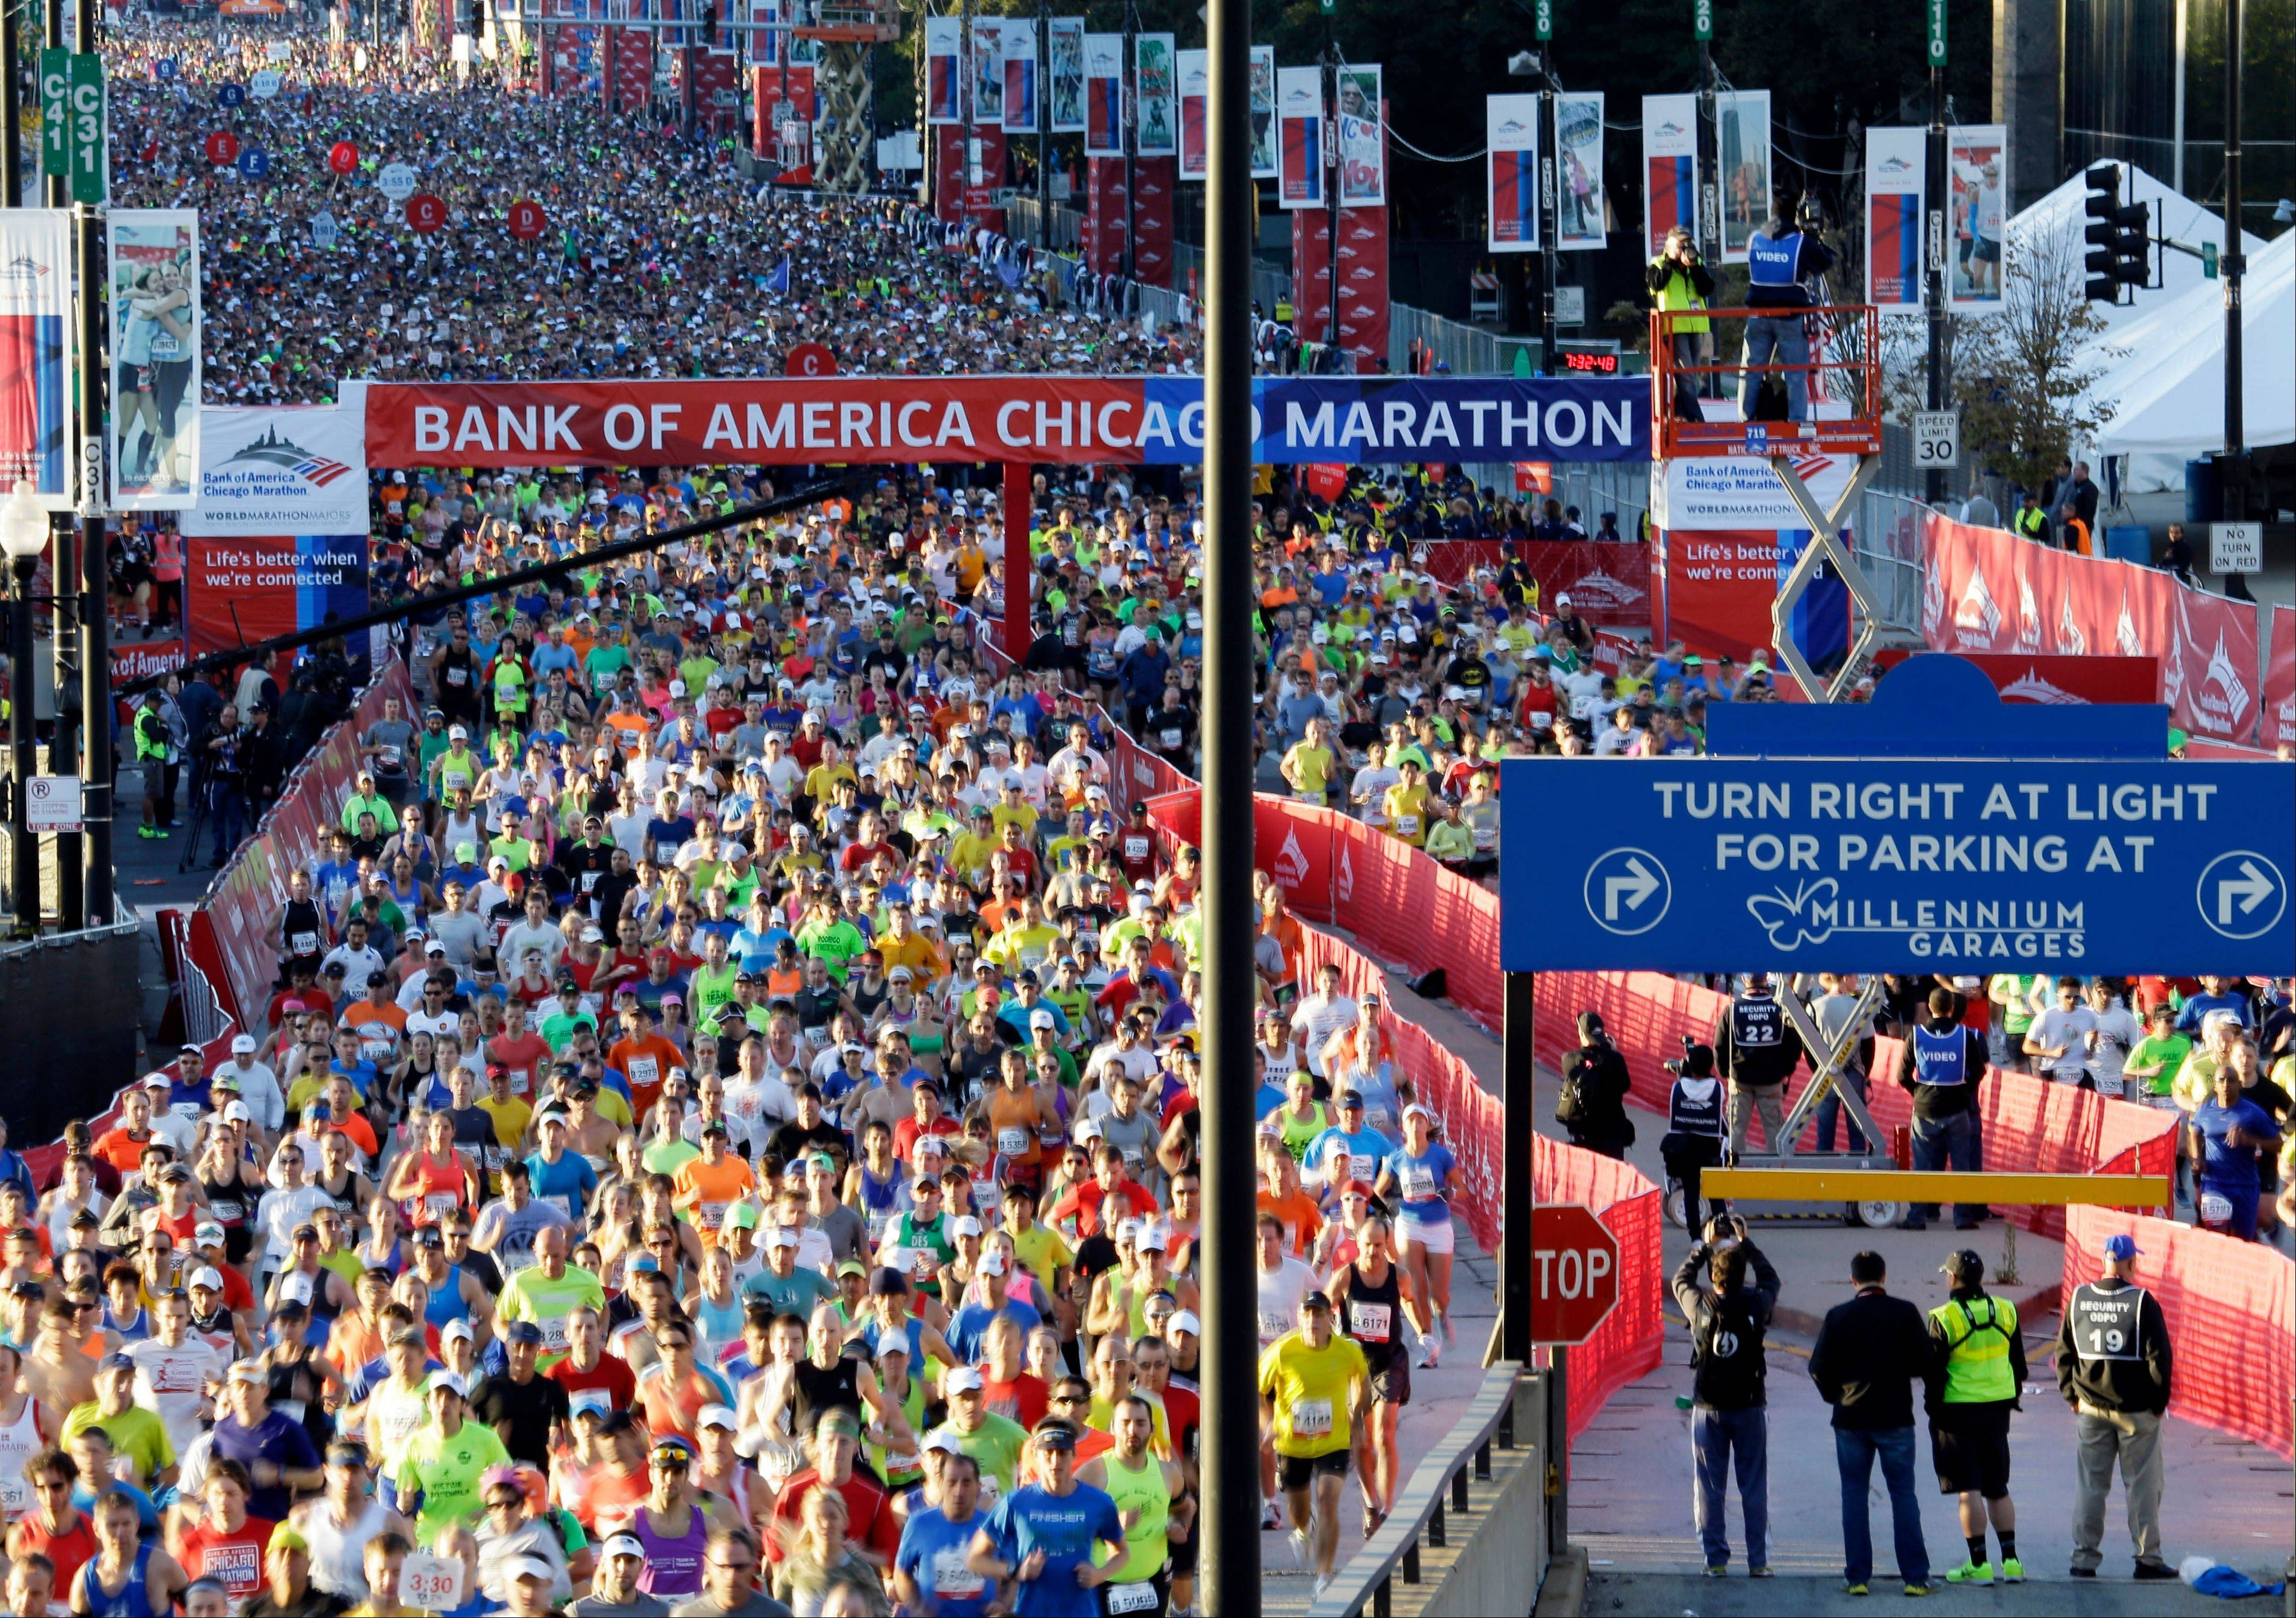 Runners start the Chicago Marathon in Chicago on Sunday.